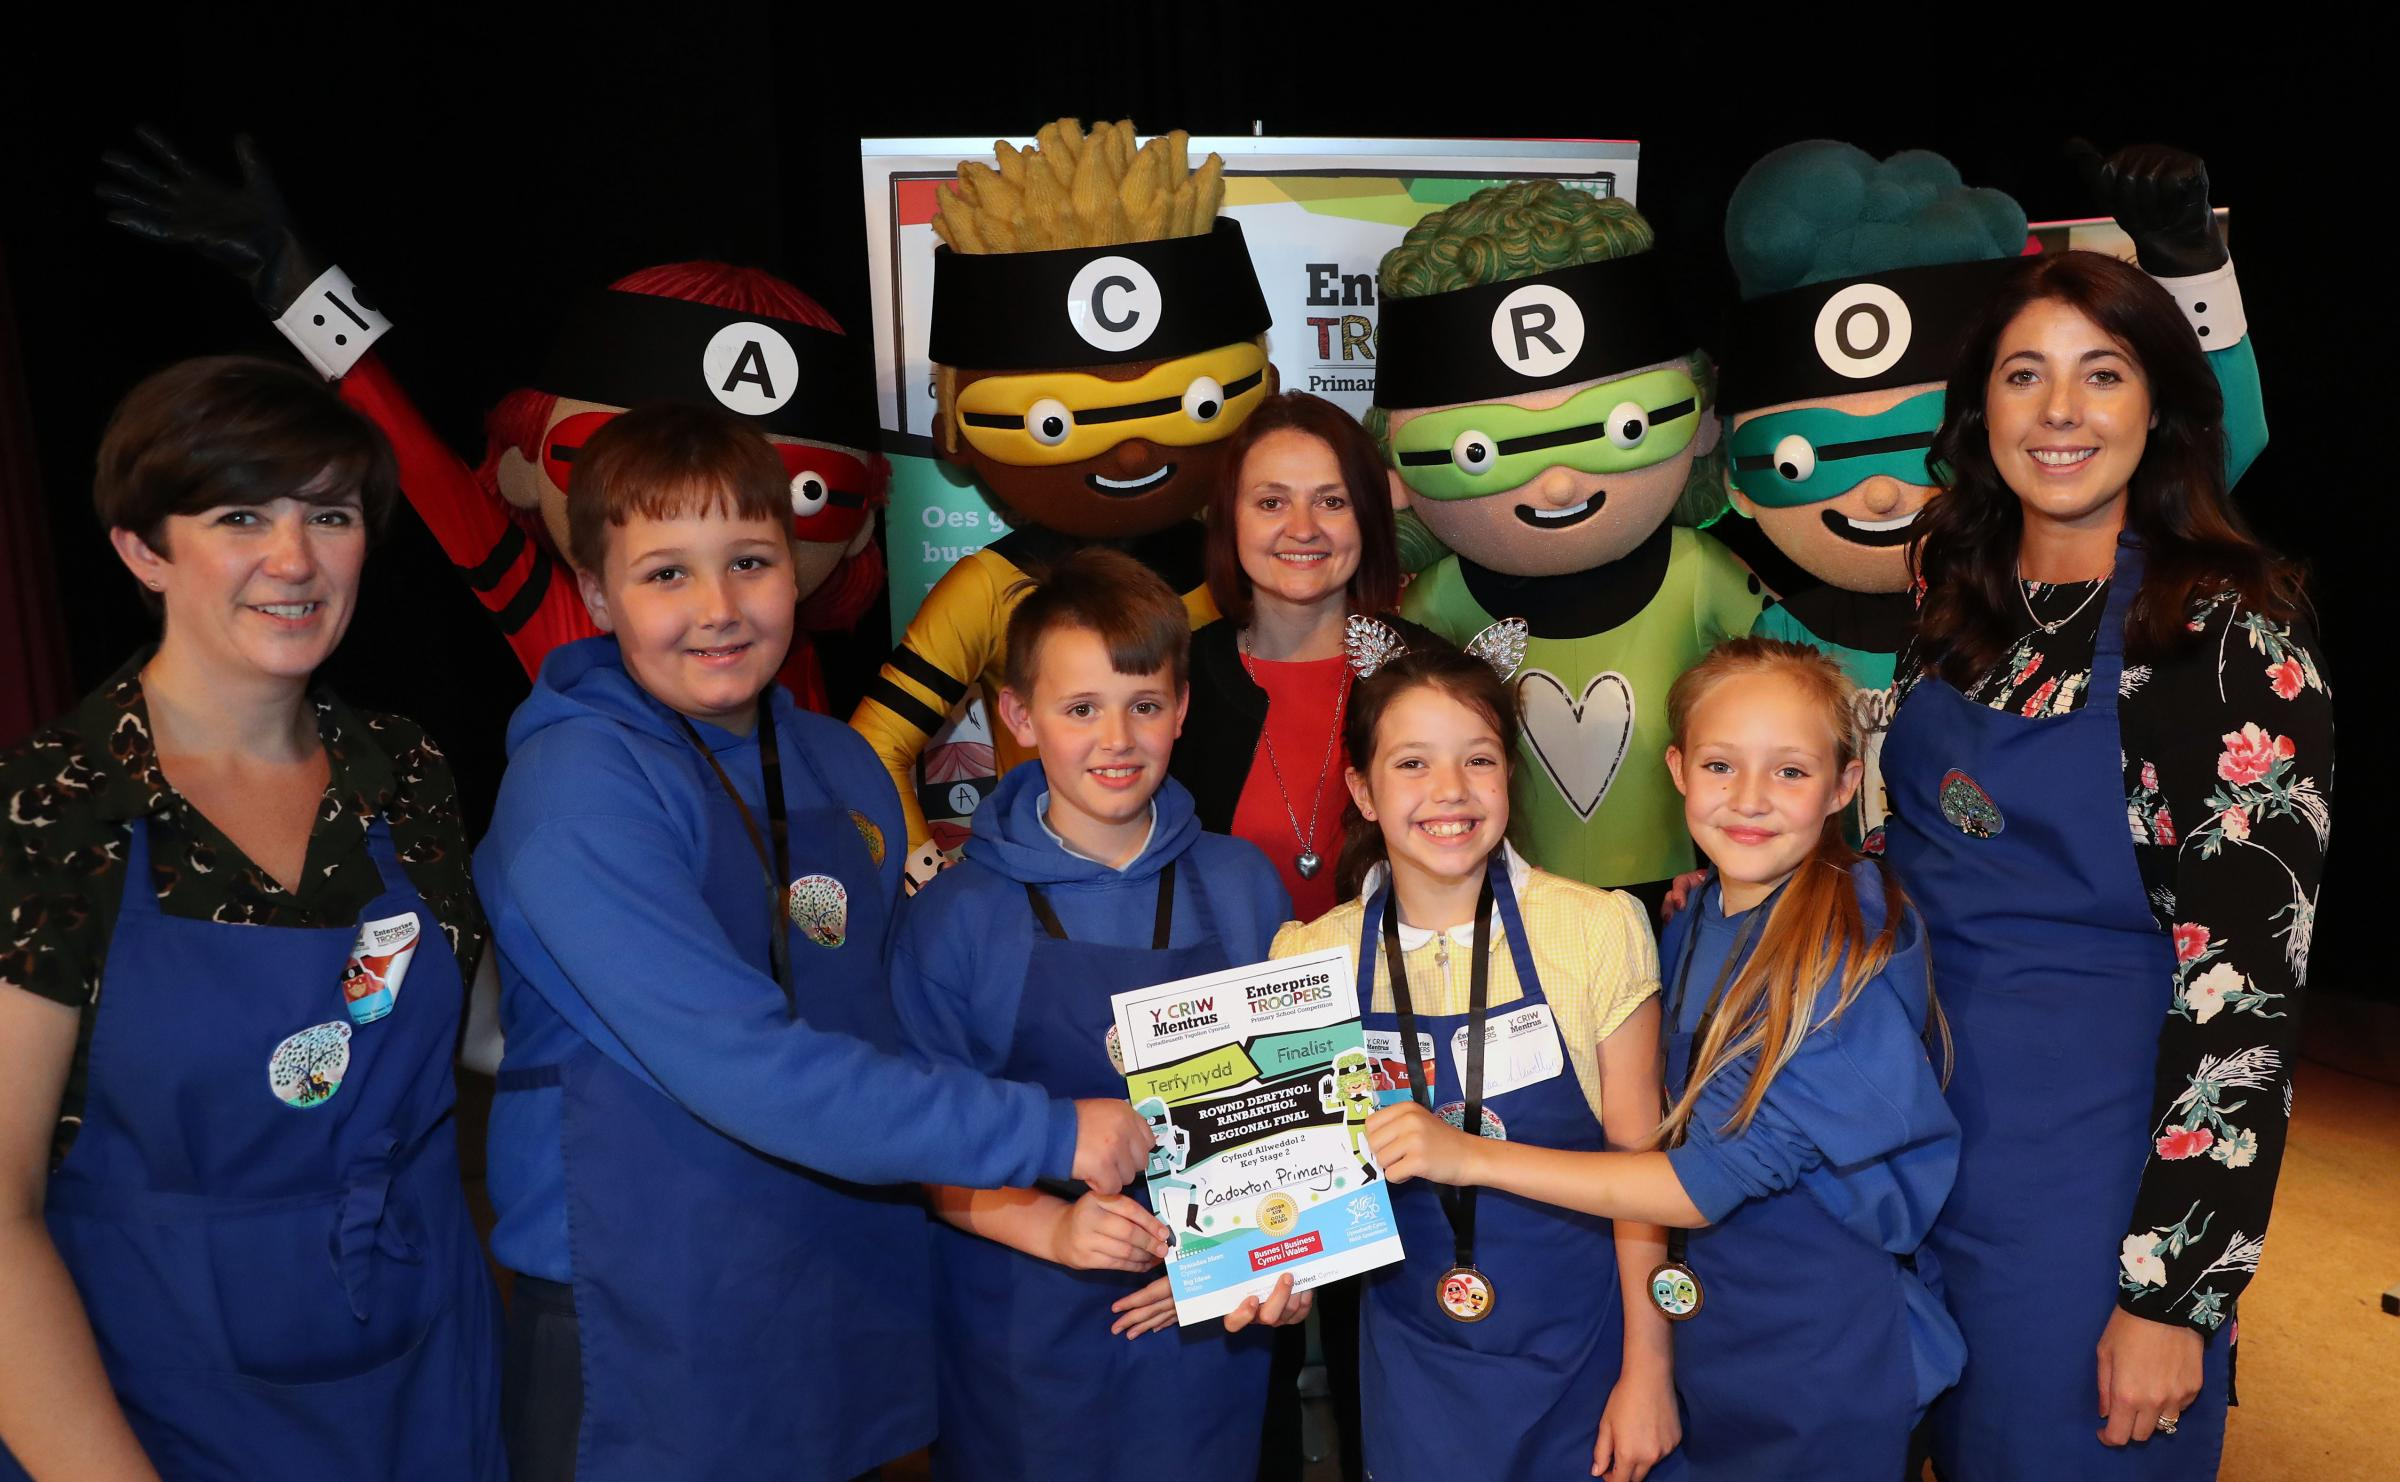 Cadoxton Primary School pupils impressed judges